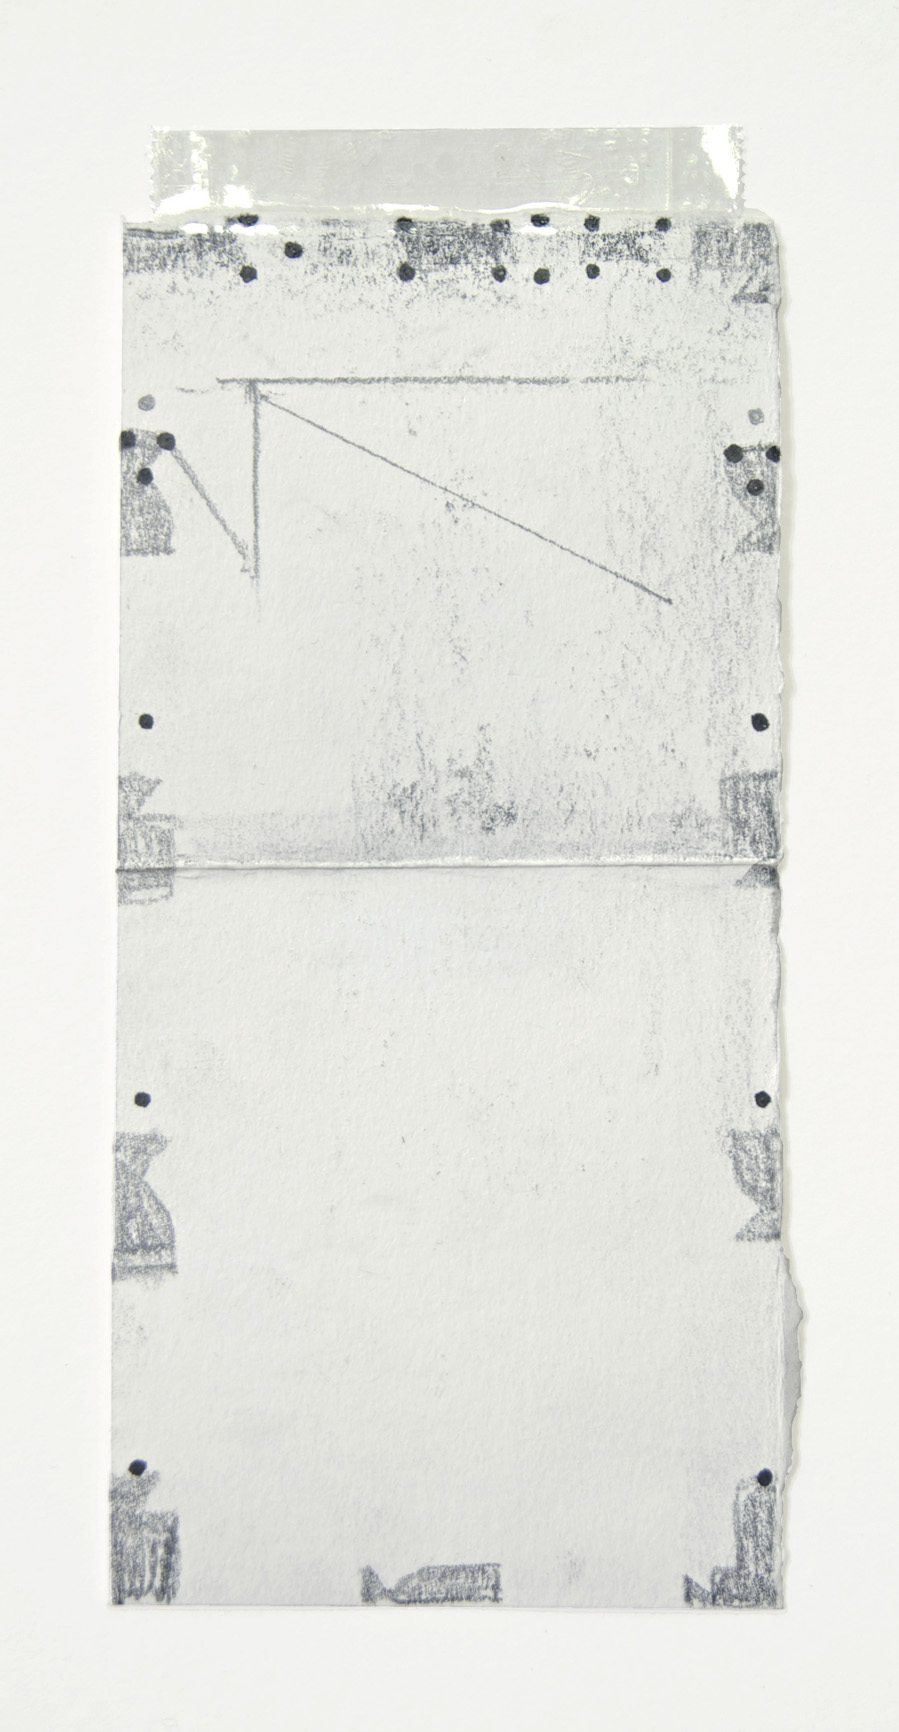 Untitled 2015    15x6,5 cm.     Graphite, ink and tape on folded paper